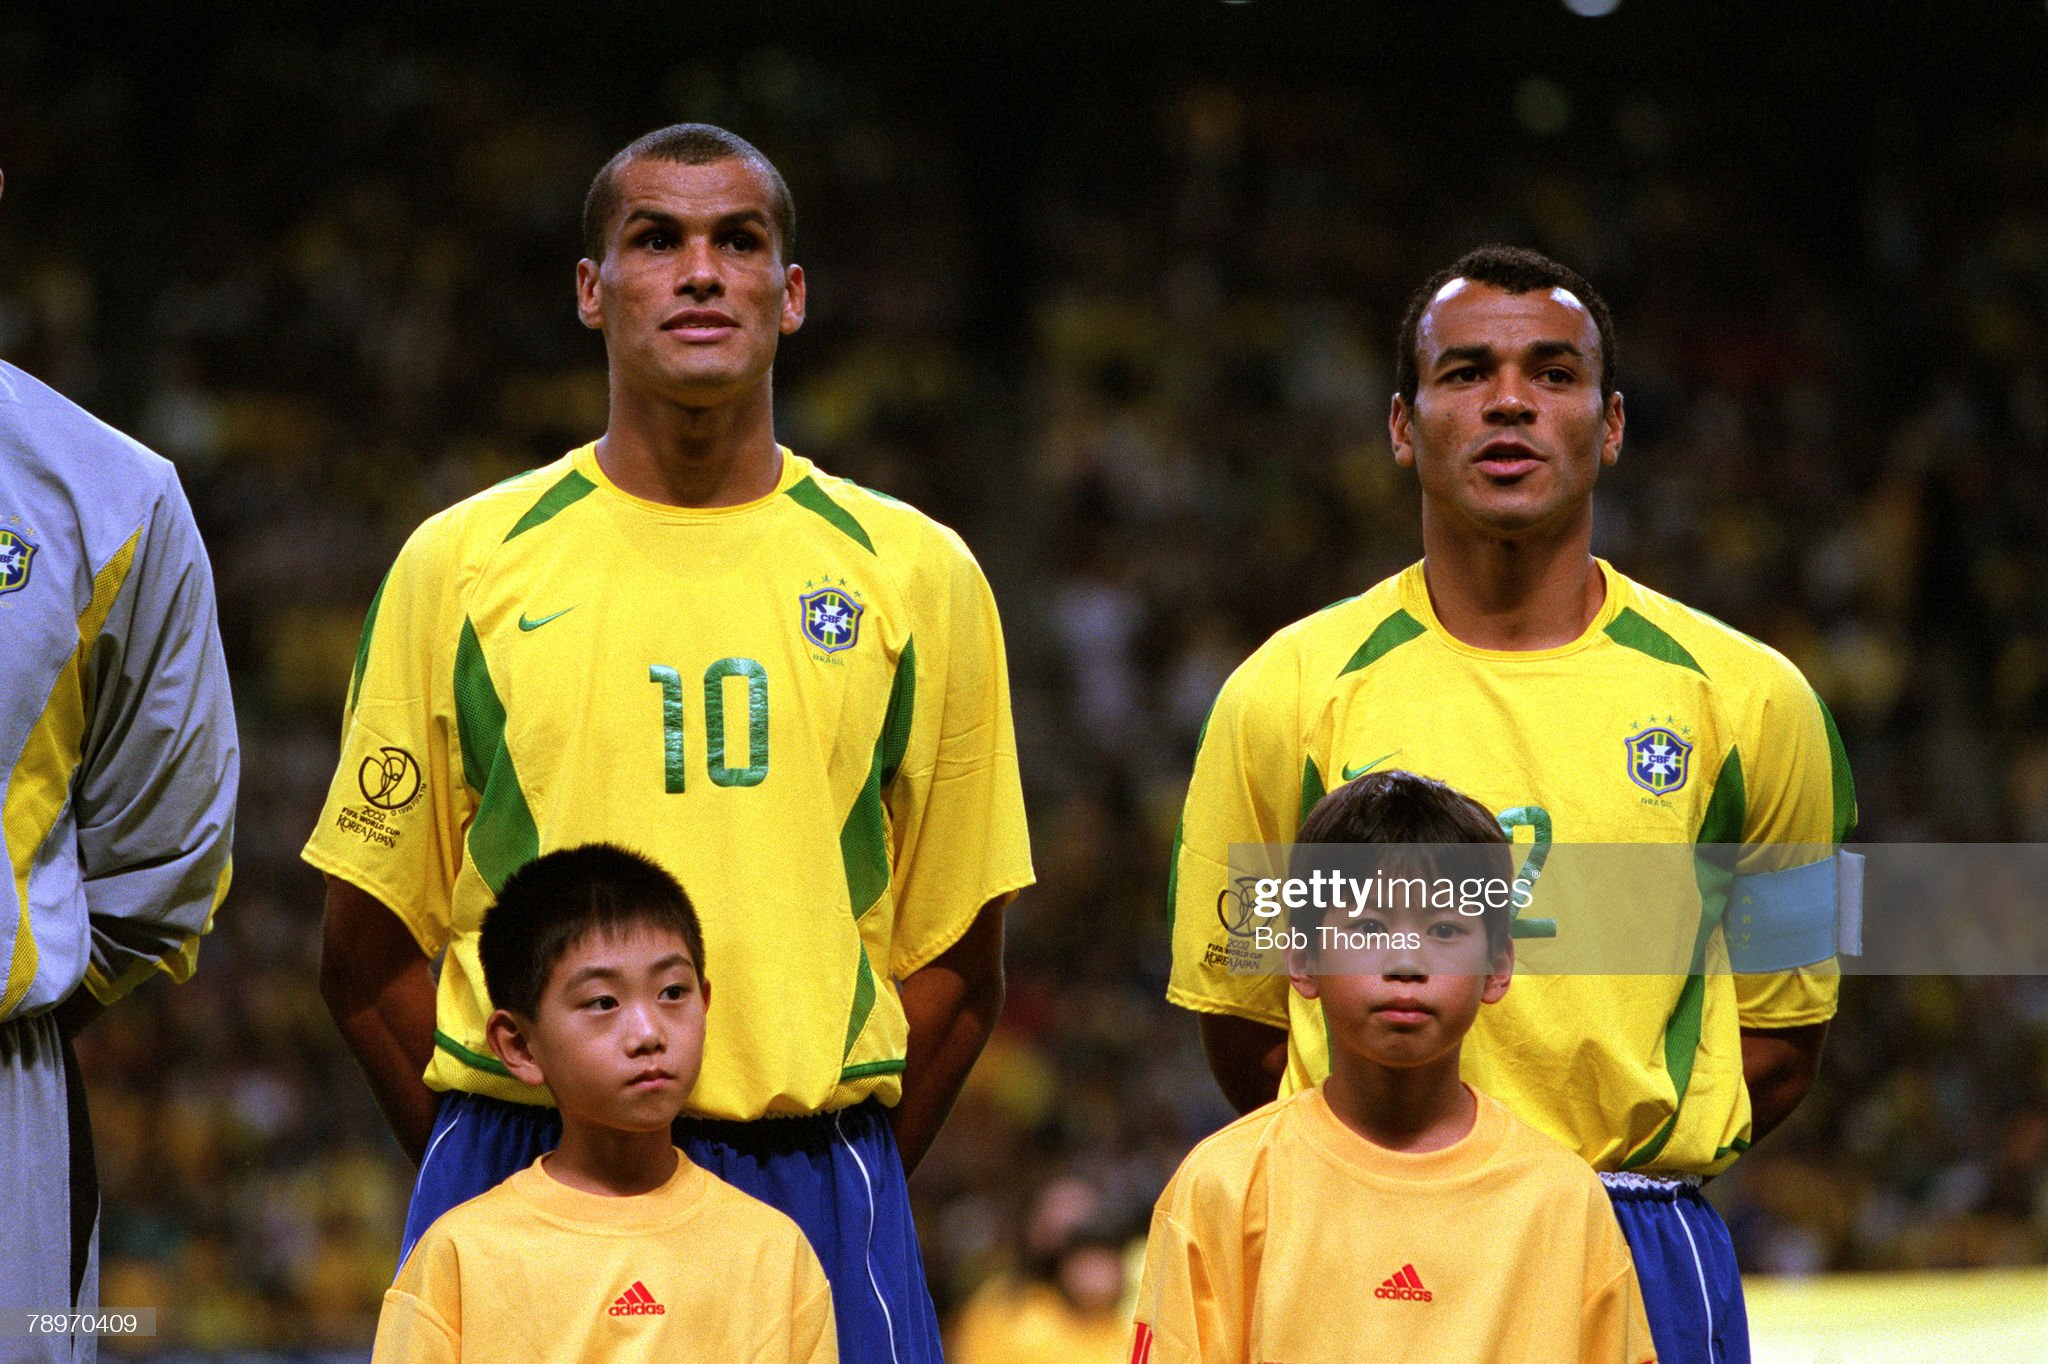 Football. 2002 FIFA World Cup Finals. Semi Final. Saitama, Japan. 26th June 2002. Brazil 1 v Turkey 0. Members of the Brazil team are pictured with mascots as they sing their anthem prior to the match. L-R: Rivaldo and Cafu (captain). Credit: POPPERFOTO/J : News Photo